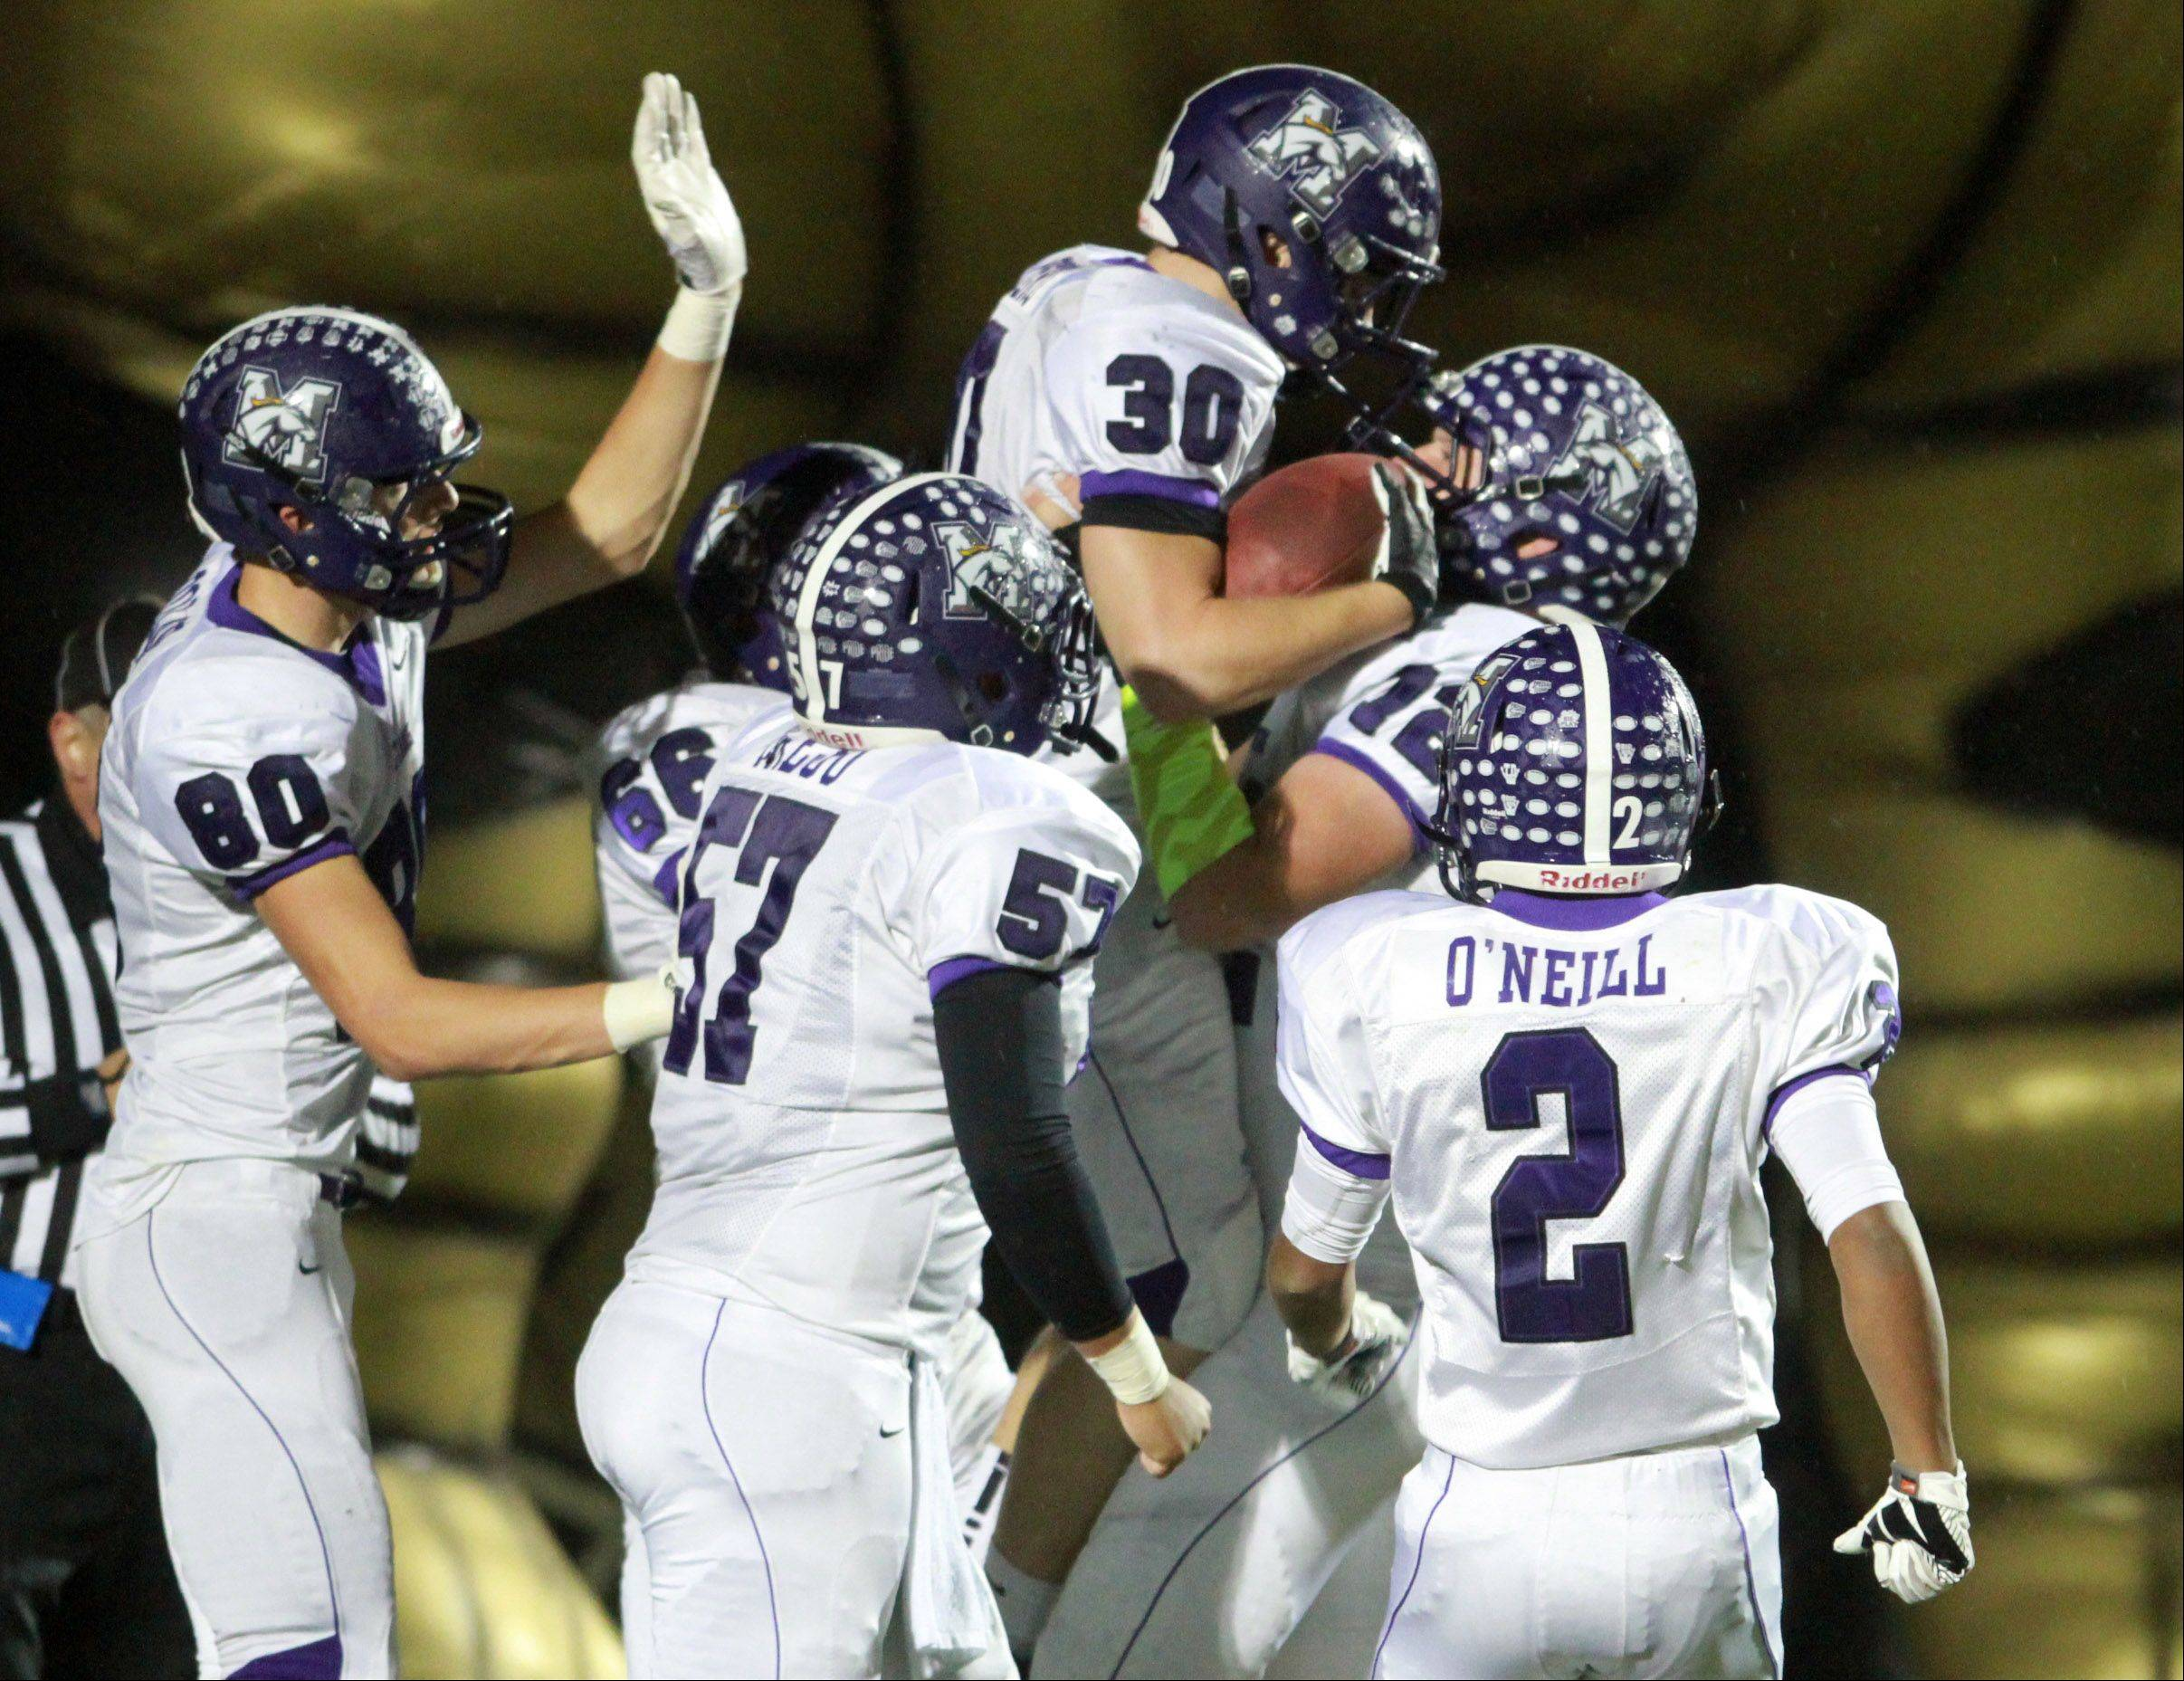 After scoring a touchdown, Rolling Meadows Kevin Montero leaps into the arms of offensive lineman Greg Off.